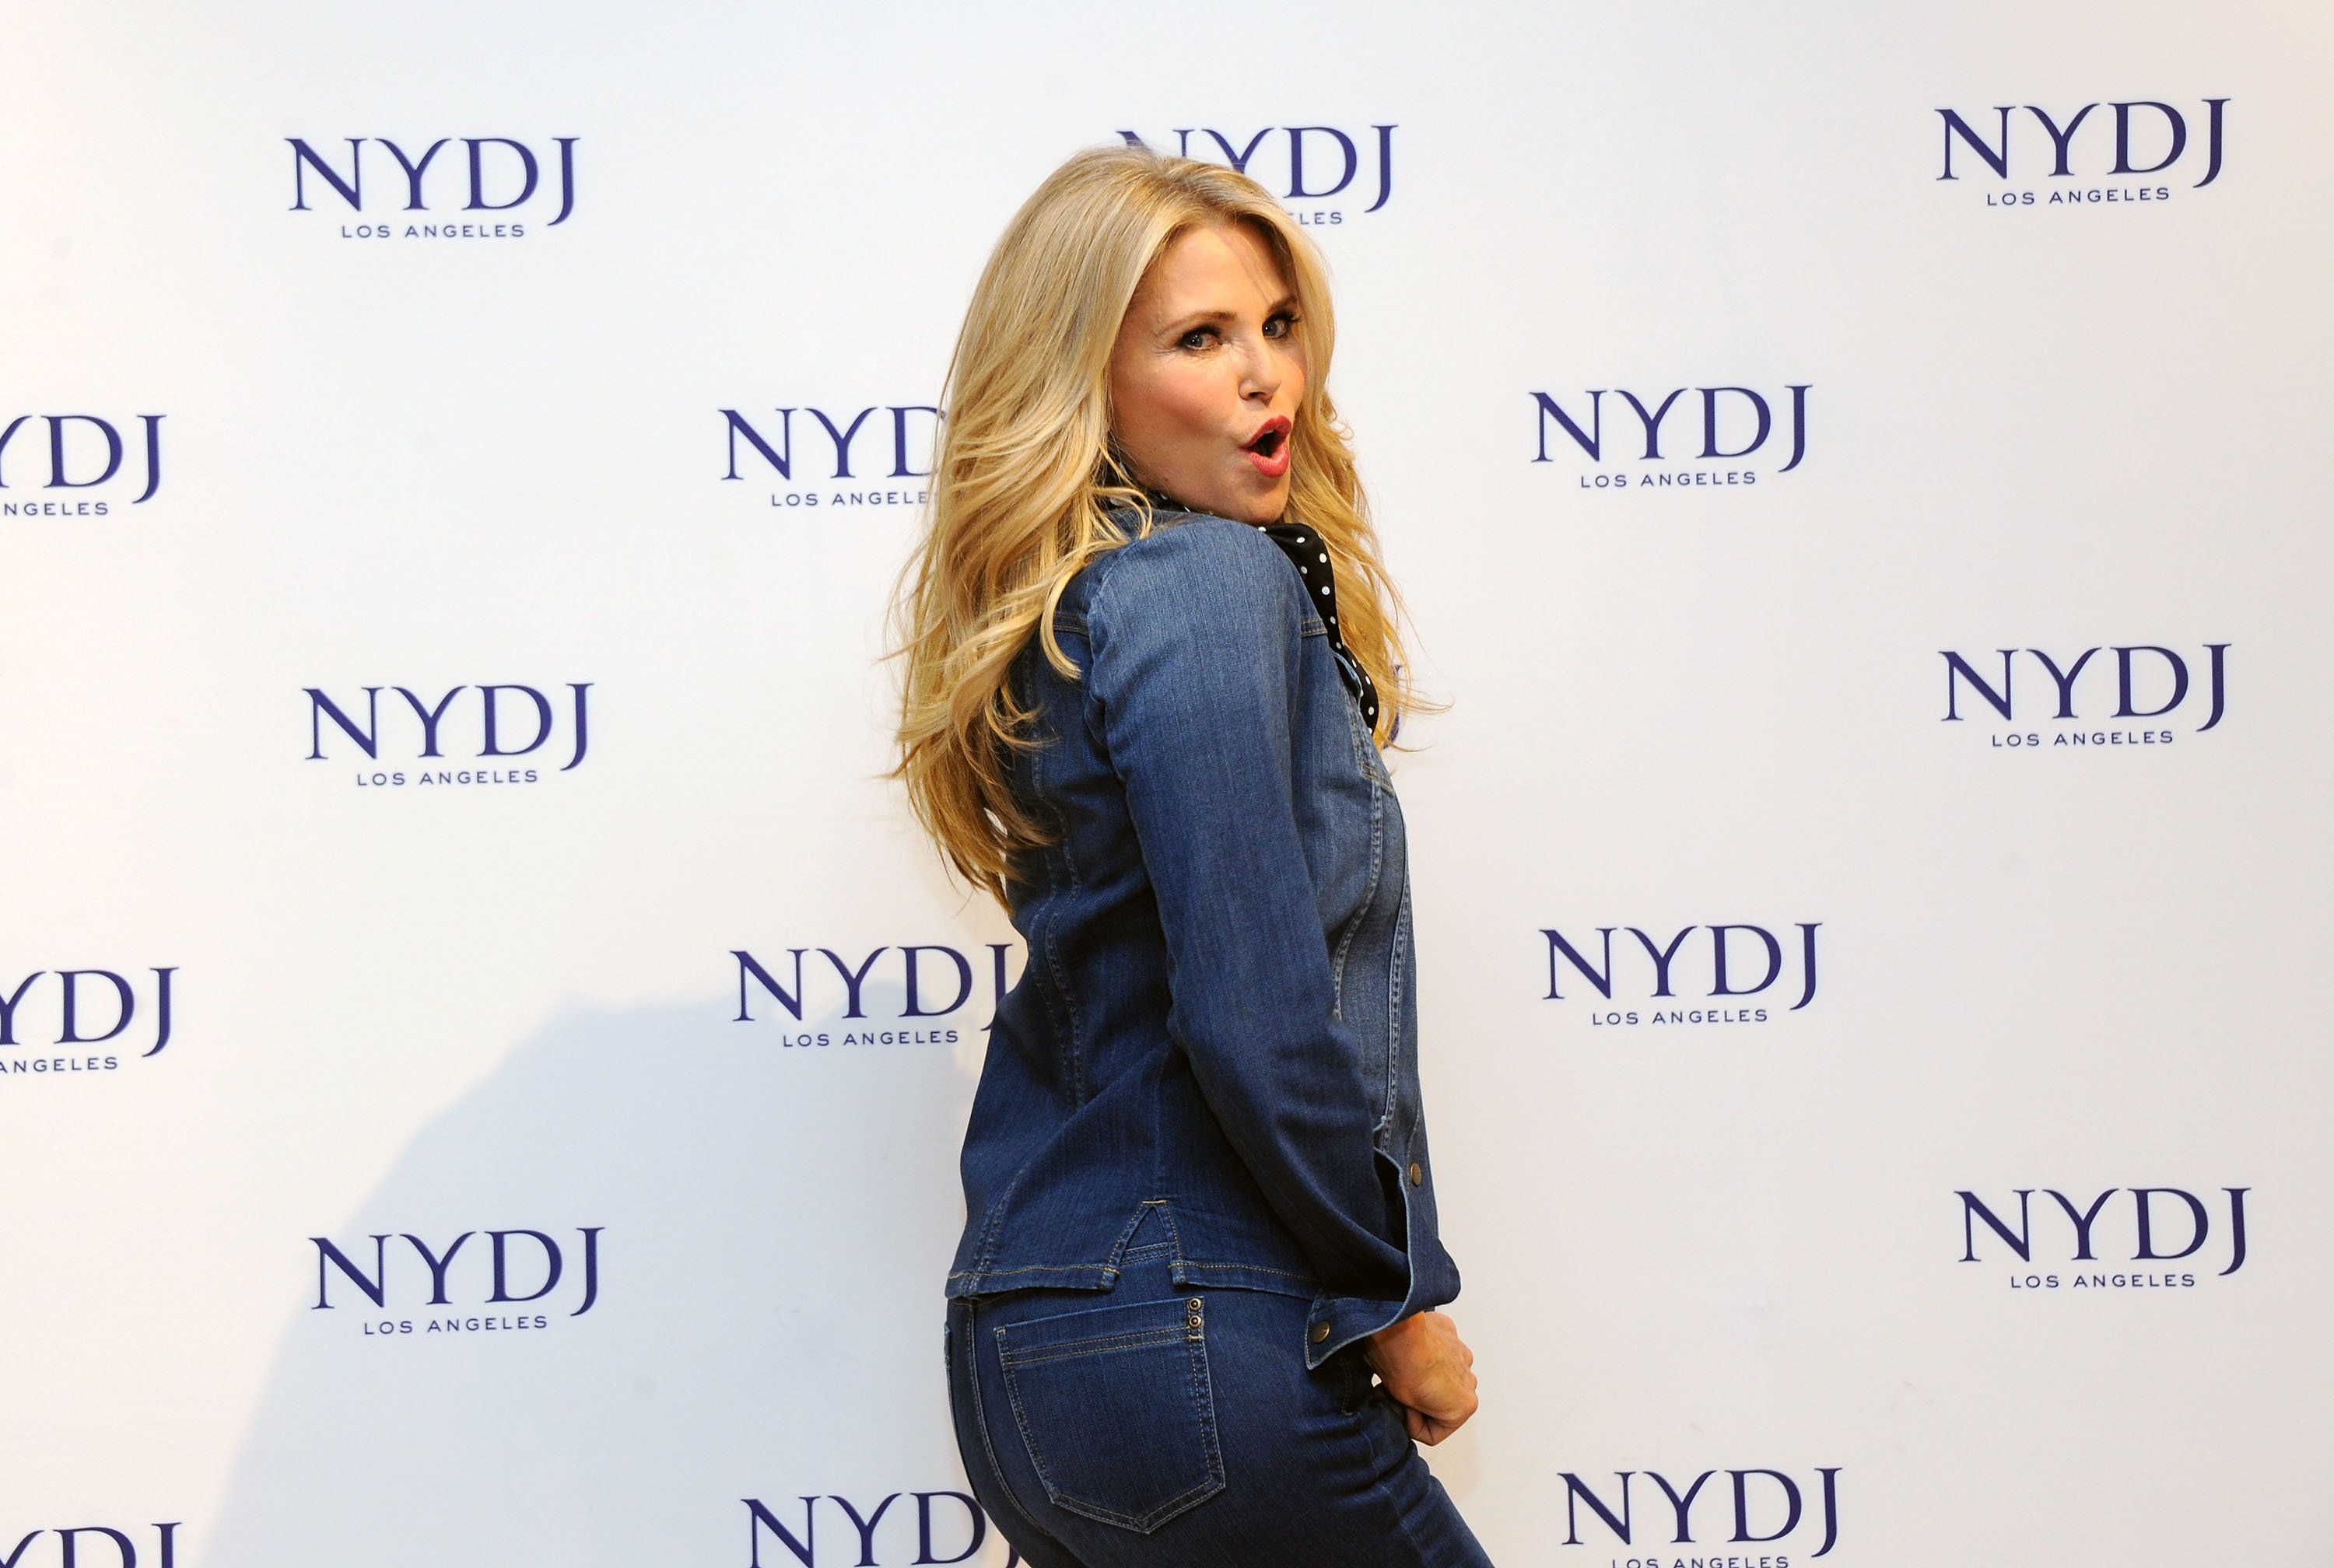 NEW YORK, NEW YORK - JANUARY 28:  Model Christie Brinkley attends NYDJ 2016 Fit To Be Campaign Launch at Lord & Taylor on January 28, 2016 in New York City.  (Photo by Desiree Navarro/WireImage)